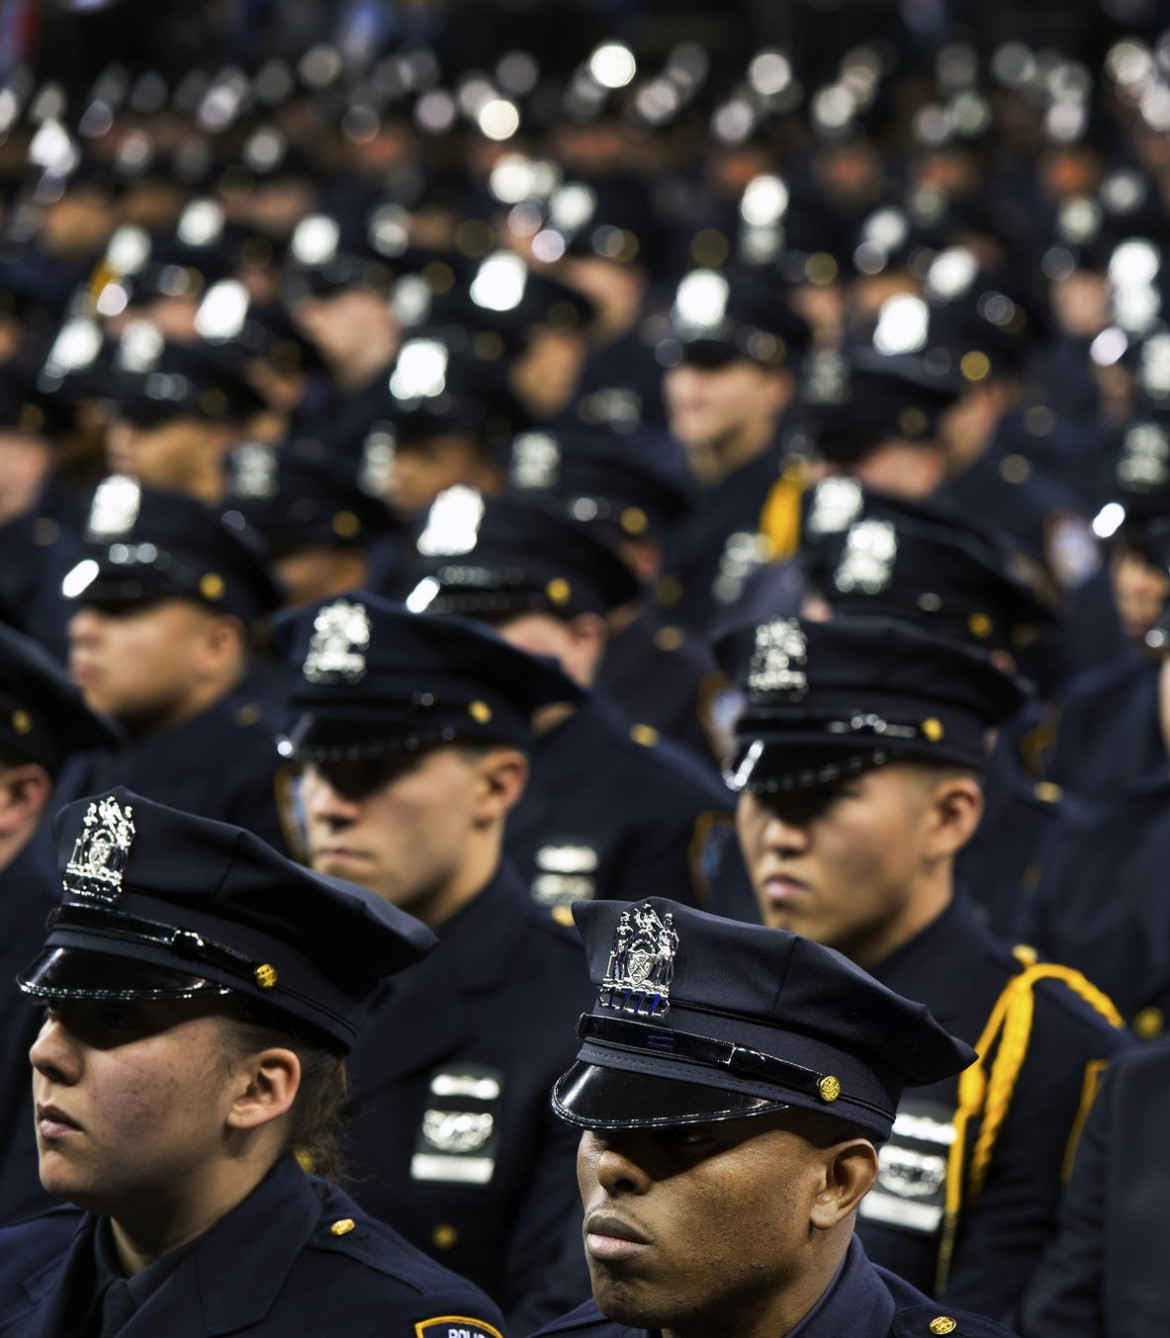 Cop Goes Viral Photo Of New York City: The NYPD Has More Police Officers Than 45 States